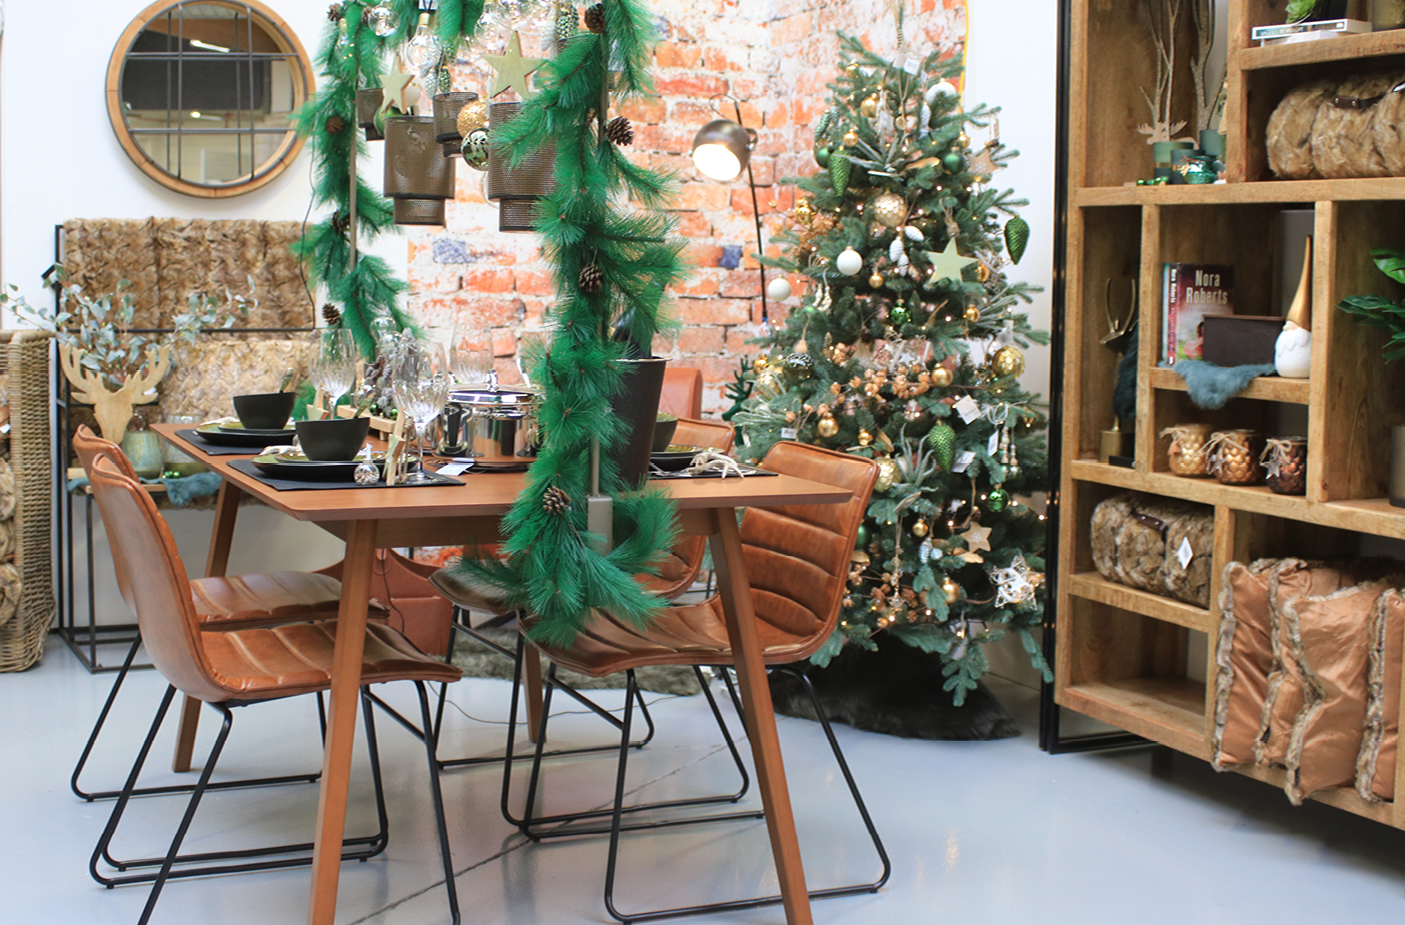 Kerst - More Than Green